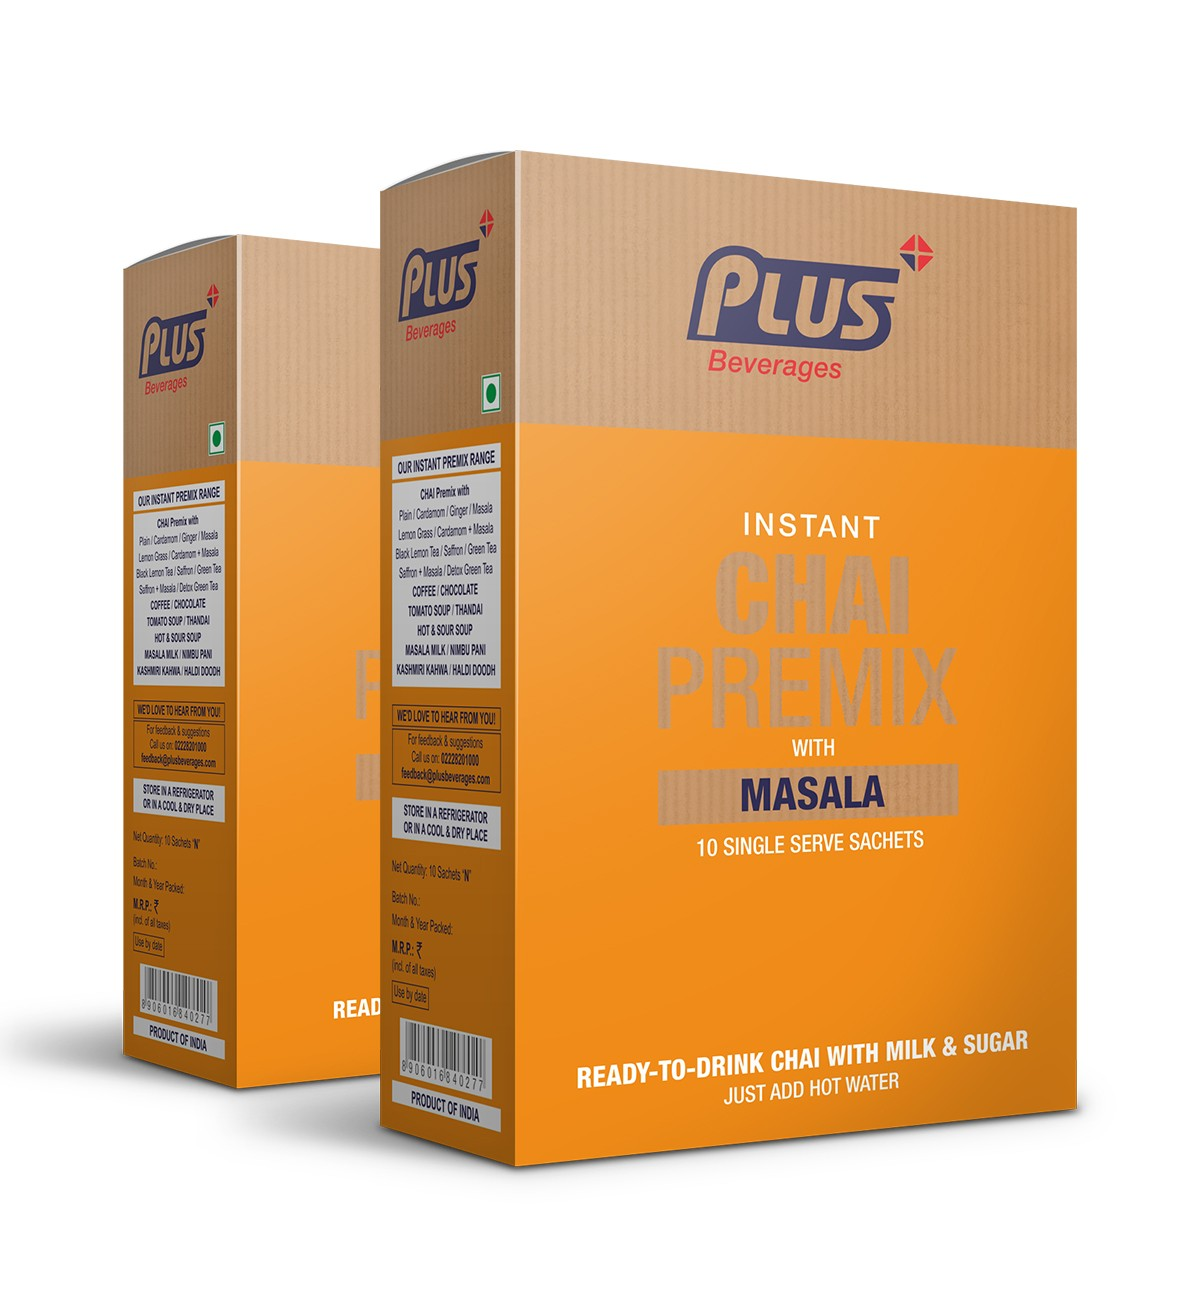 Get Instant Masala Tea Premix at best price - Free Shipping   Plus Beverages